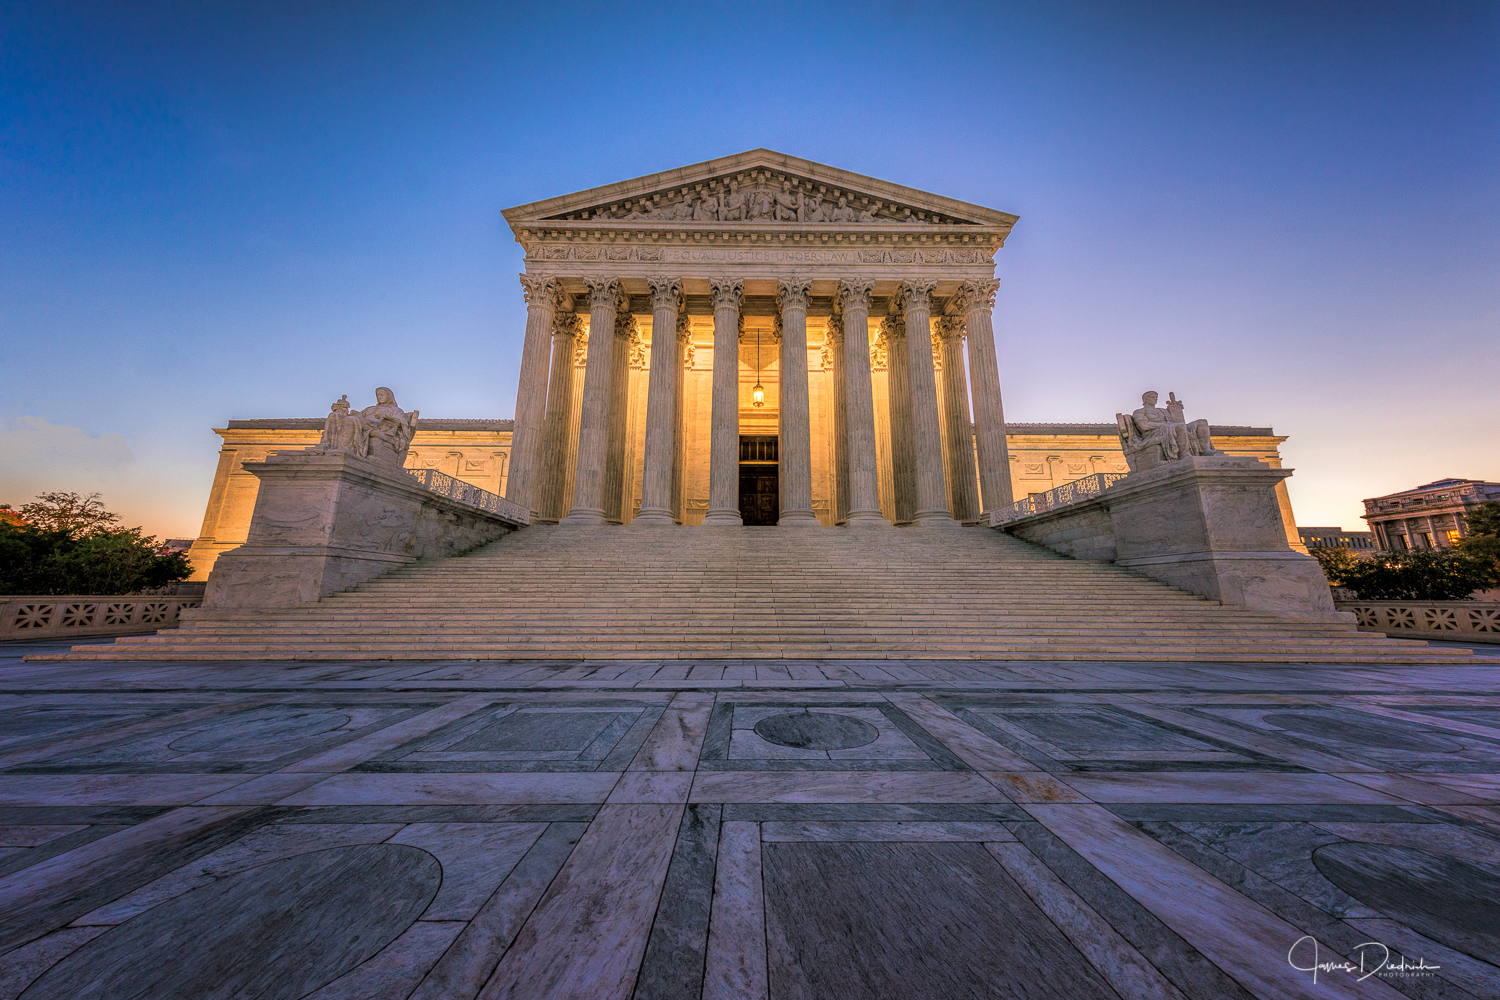 The US Supreme Court just before sunrise.